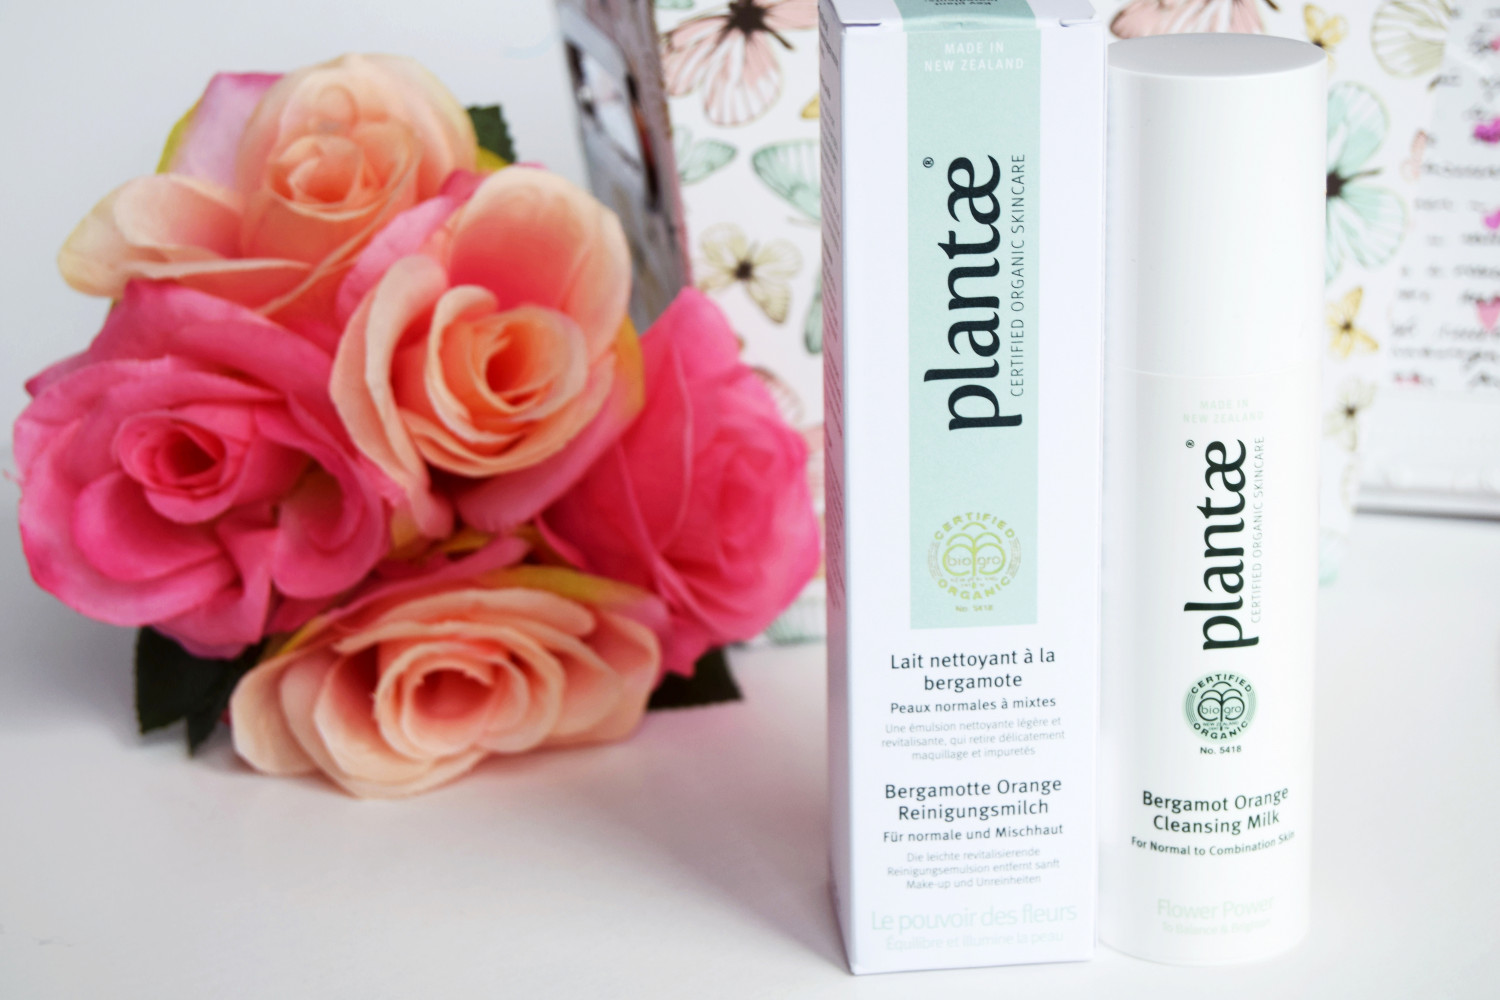 Plantae_Bergamot_Orange_Cleansing_Milk_review_Zalabell_beauty_2